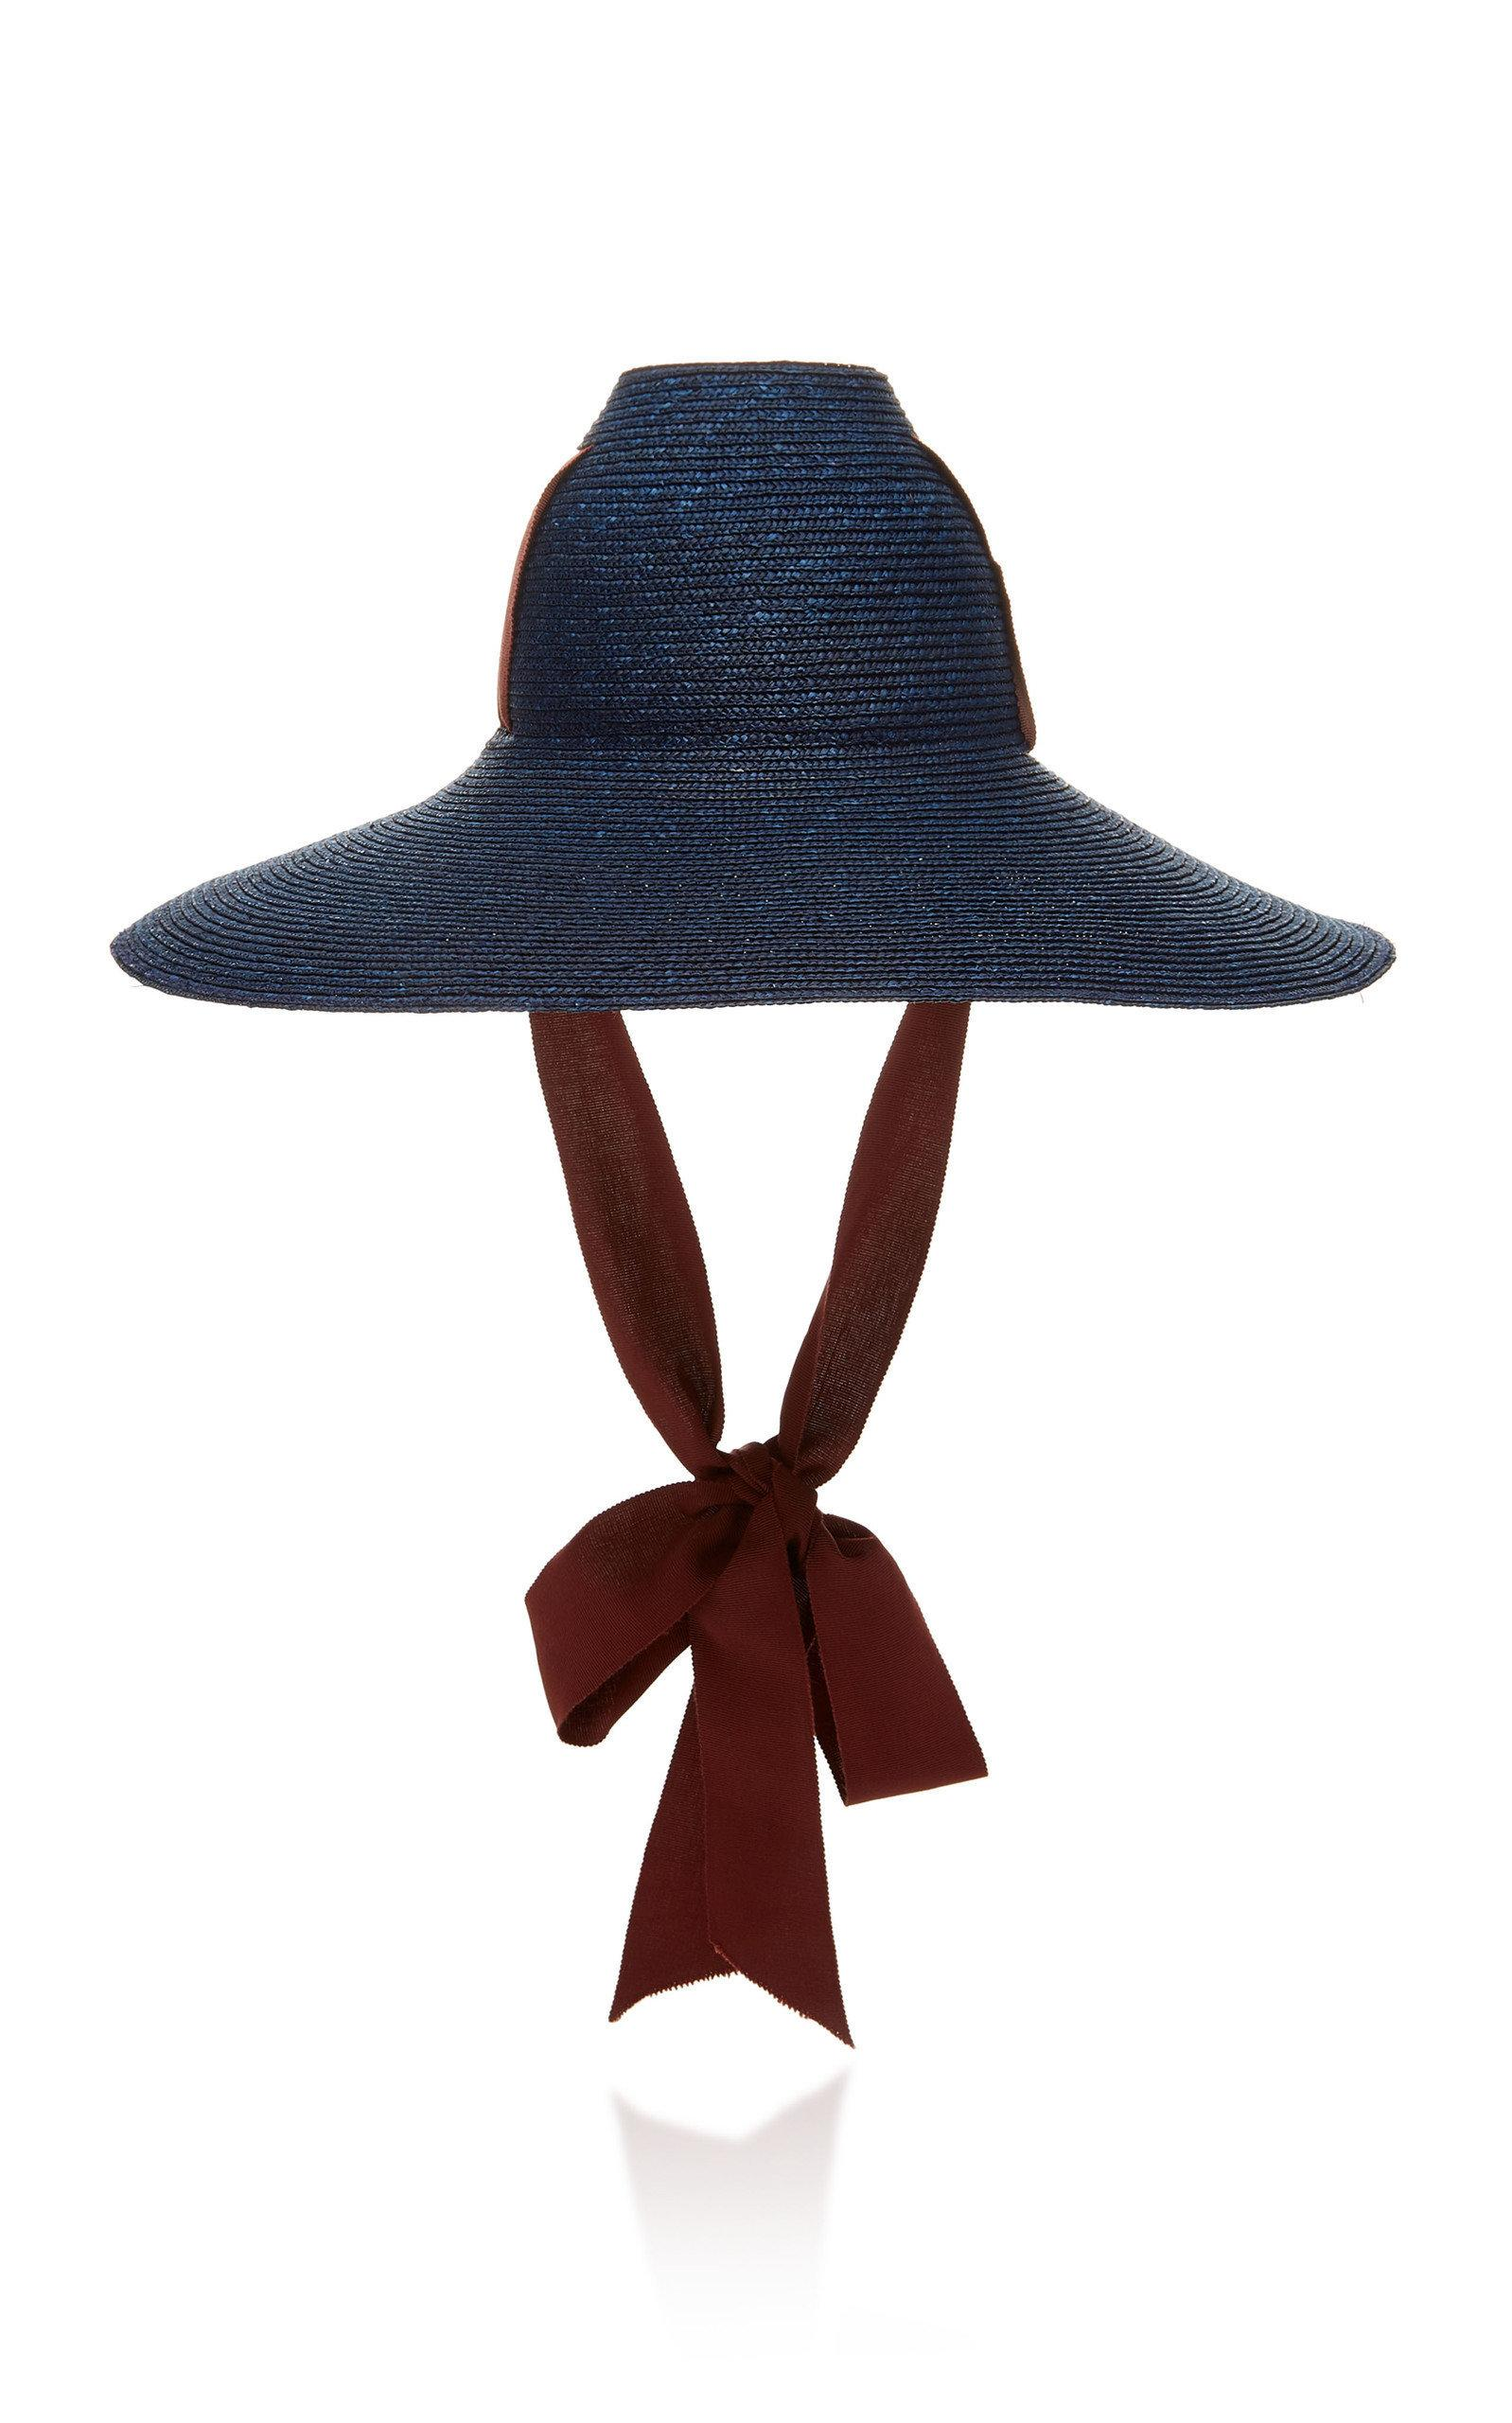 429ad307377a06 Lola Hats Little Sugar Cone Straw Hat In Blue | ModeSens